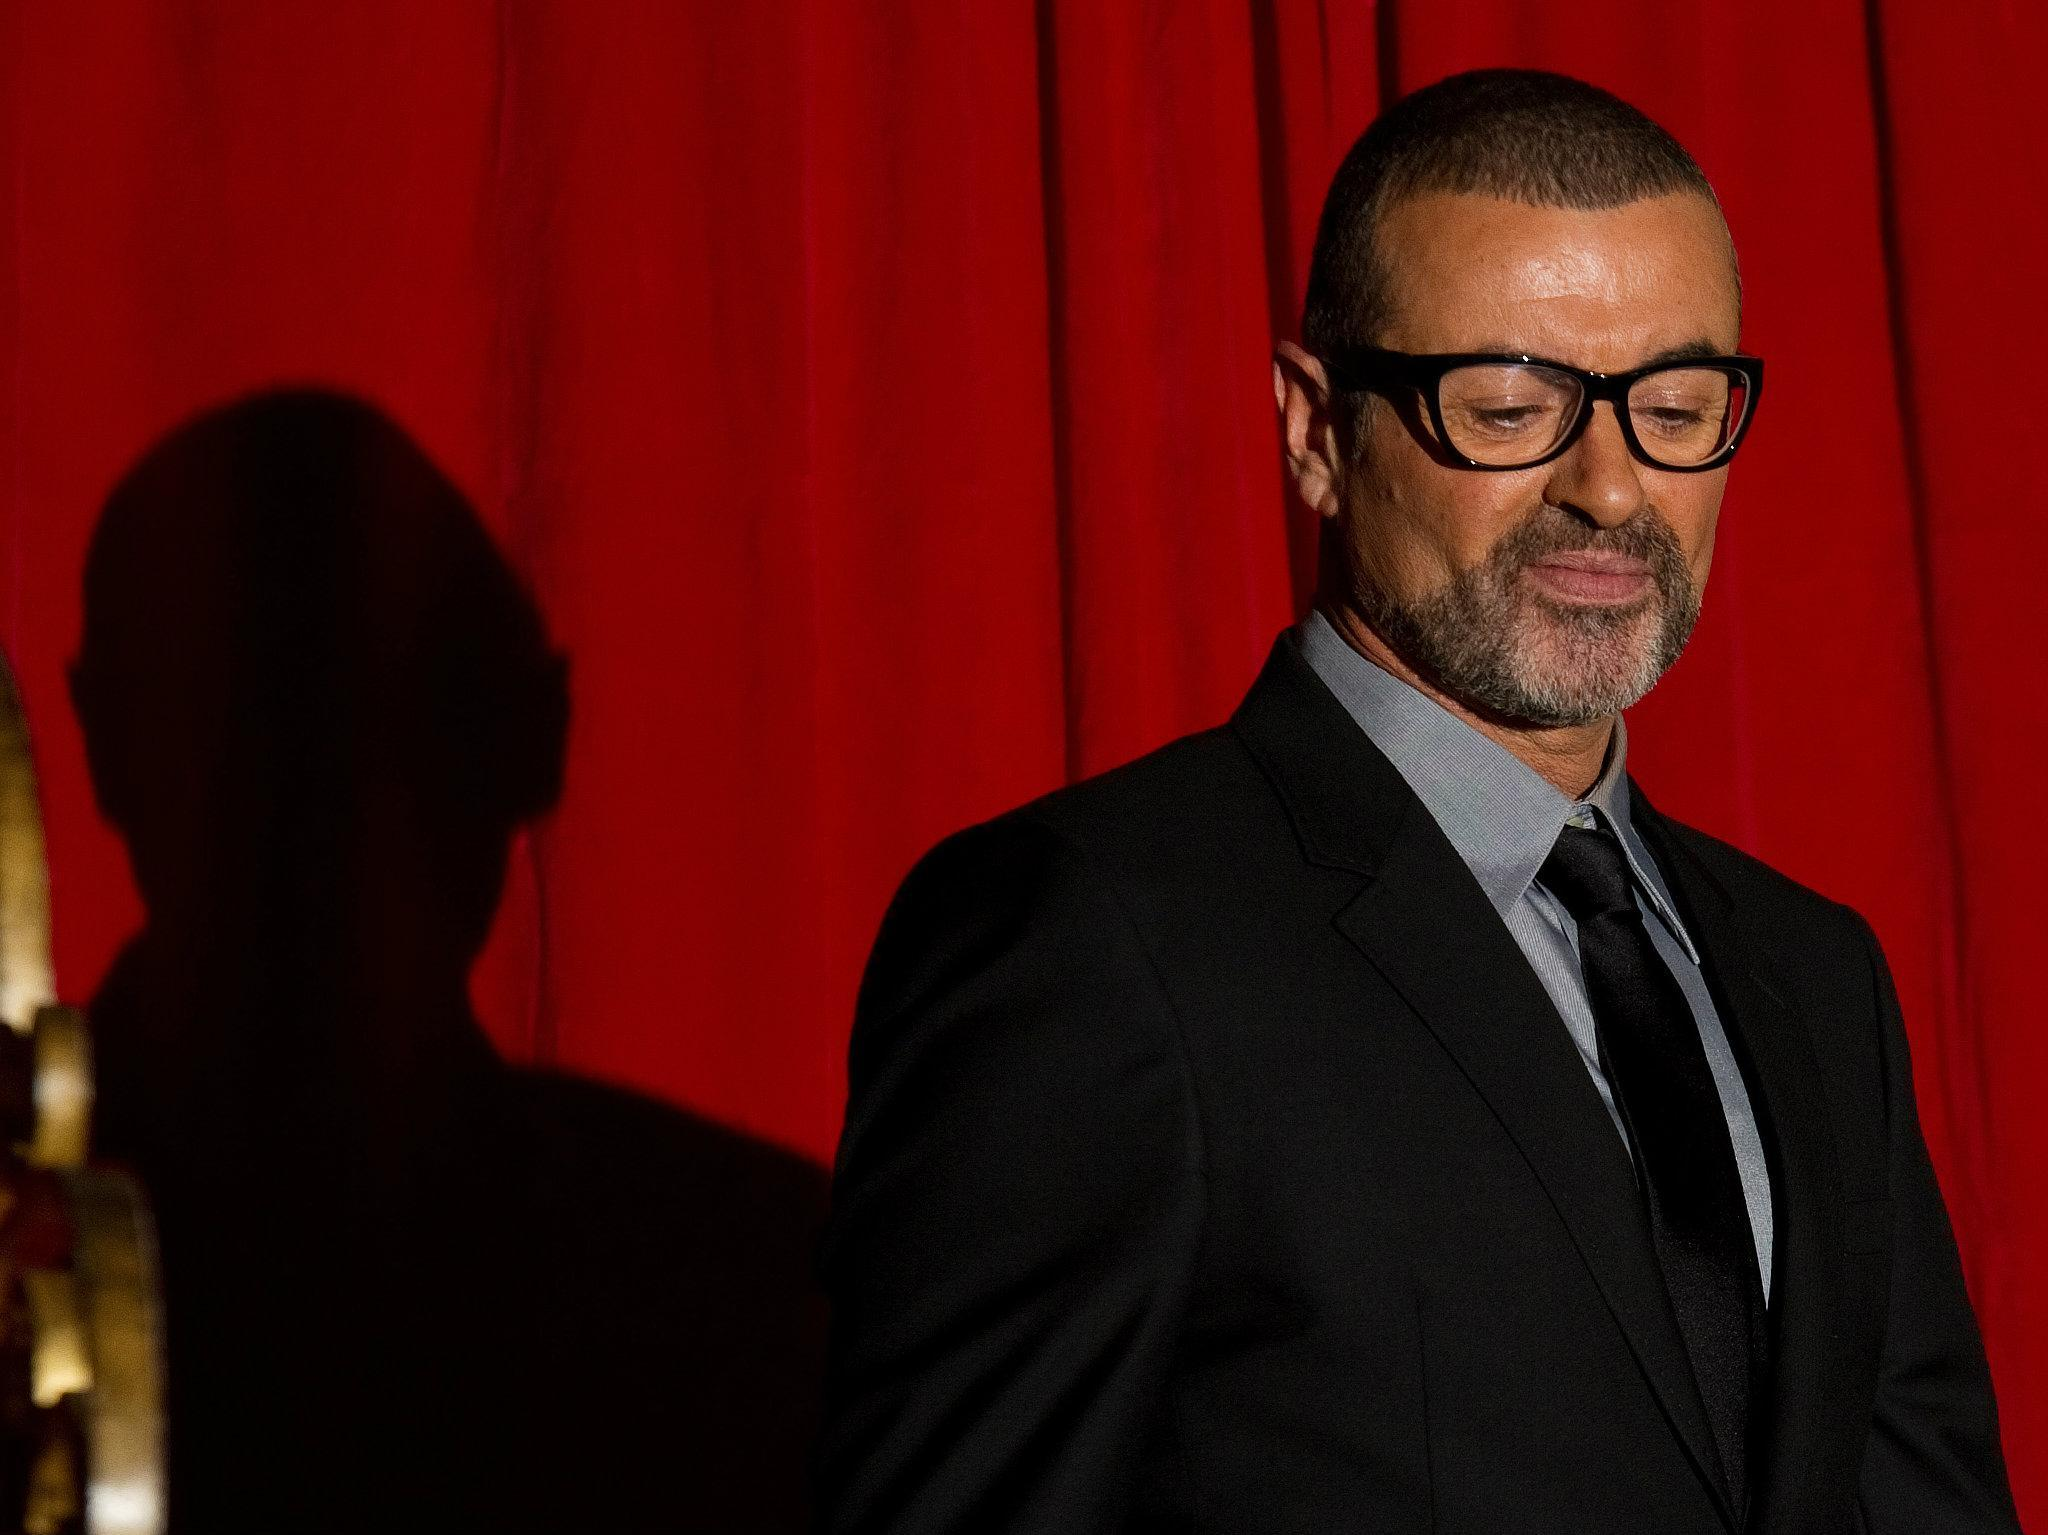 George Michael: Watch the singer crush Queen's 'Somebody to Love' as